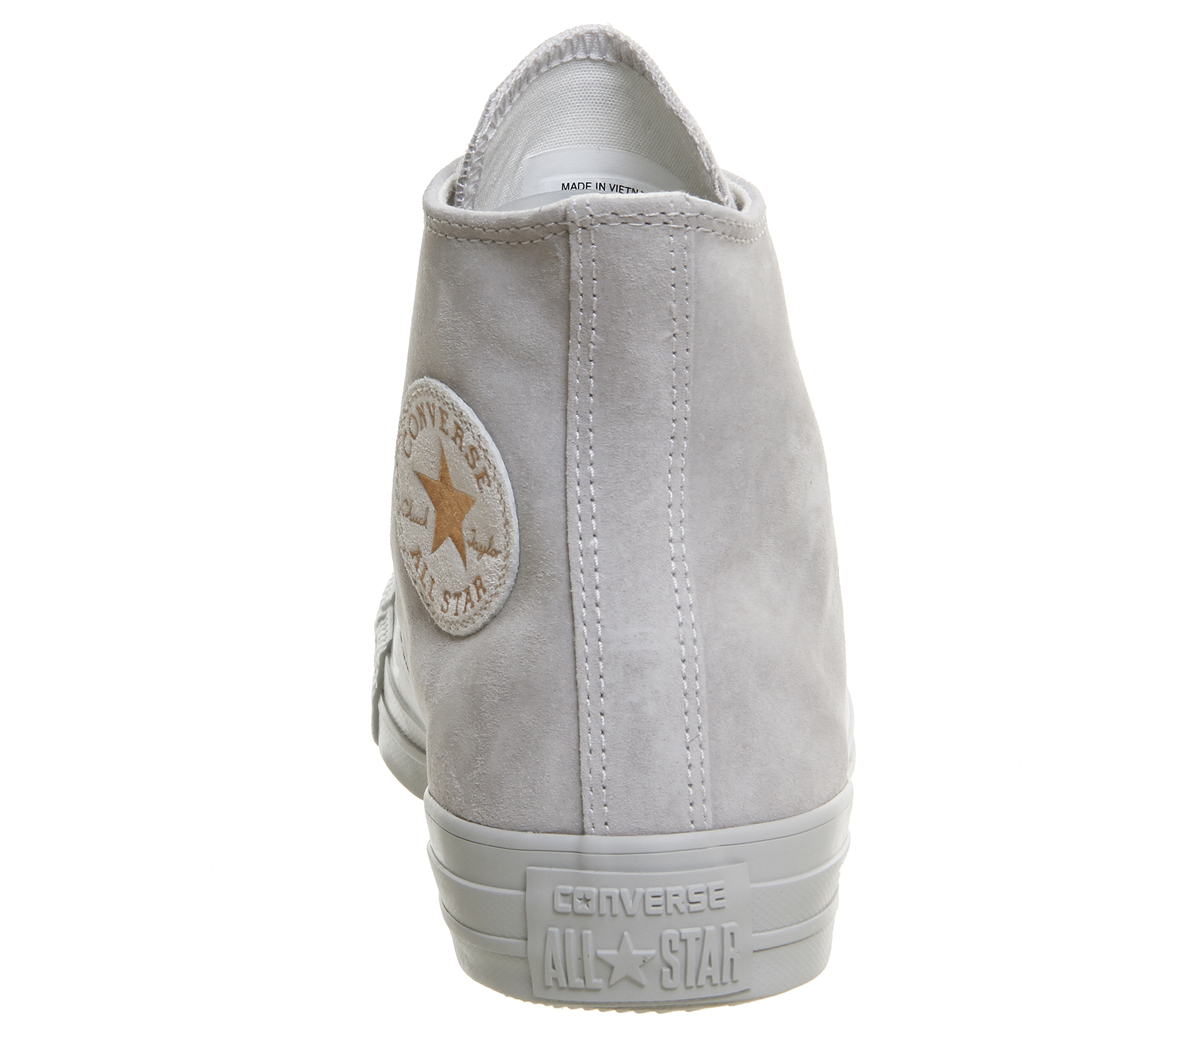 f1e98753fd3a Womens Converse All Star Hi Leather ASH GREY ROSE GOLD Trainers ...